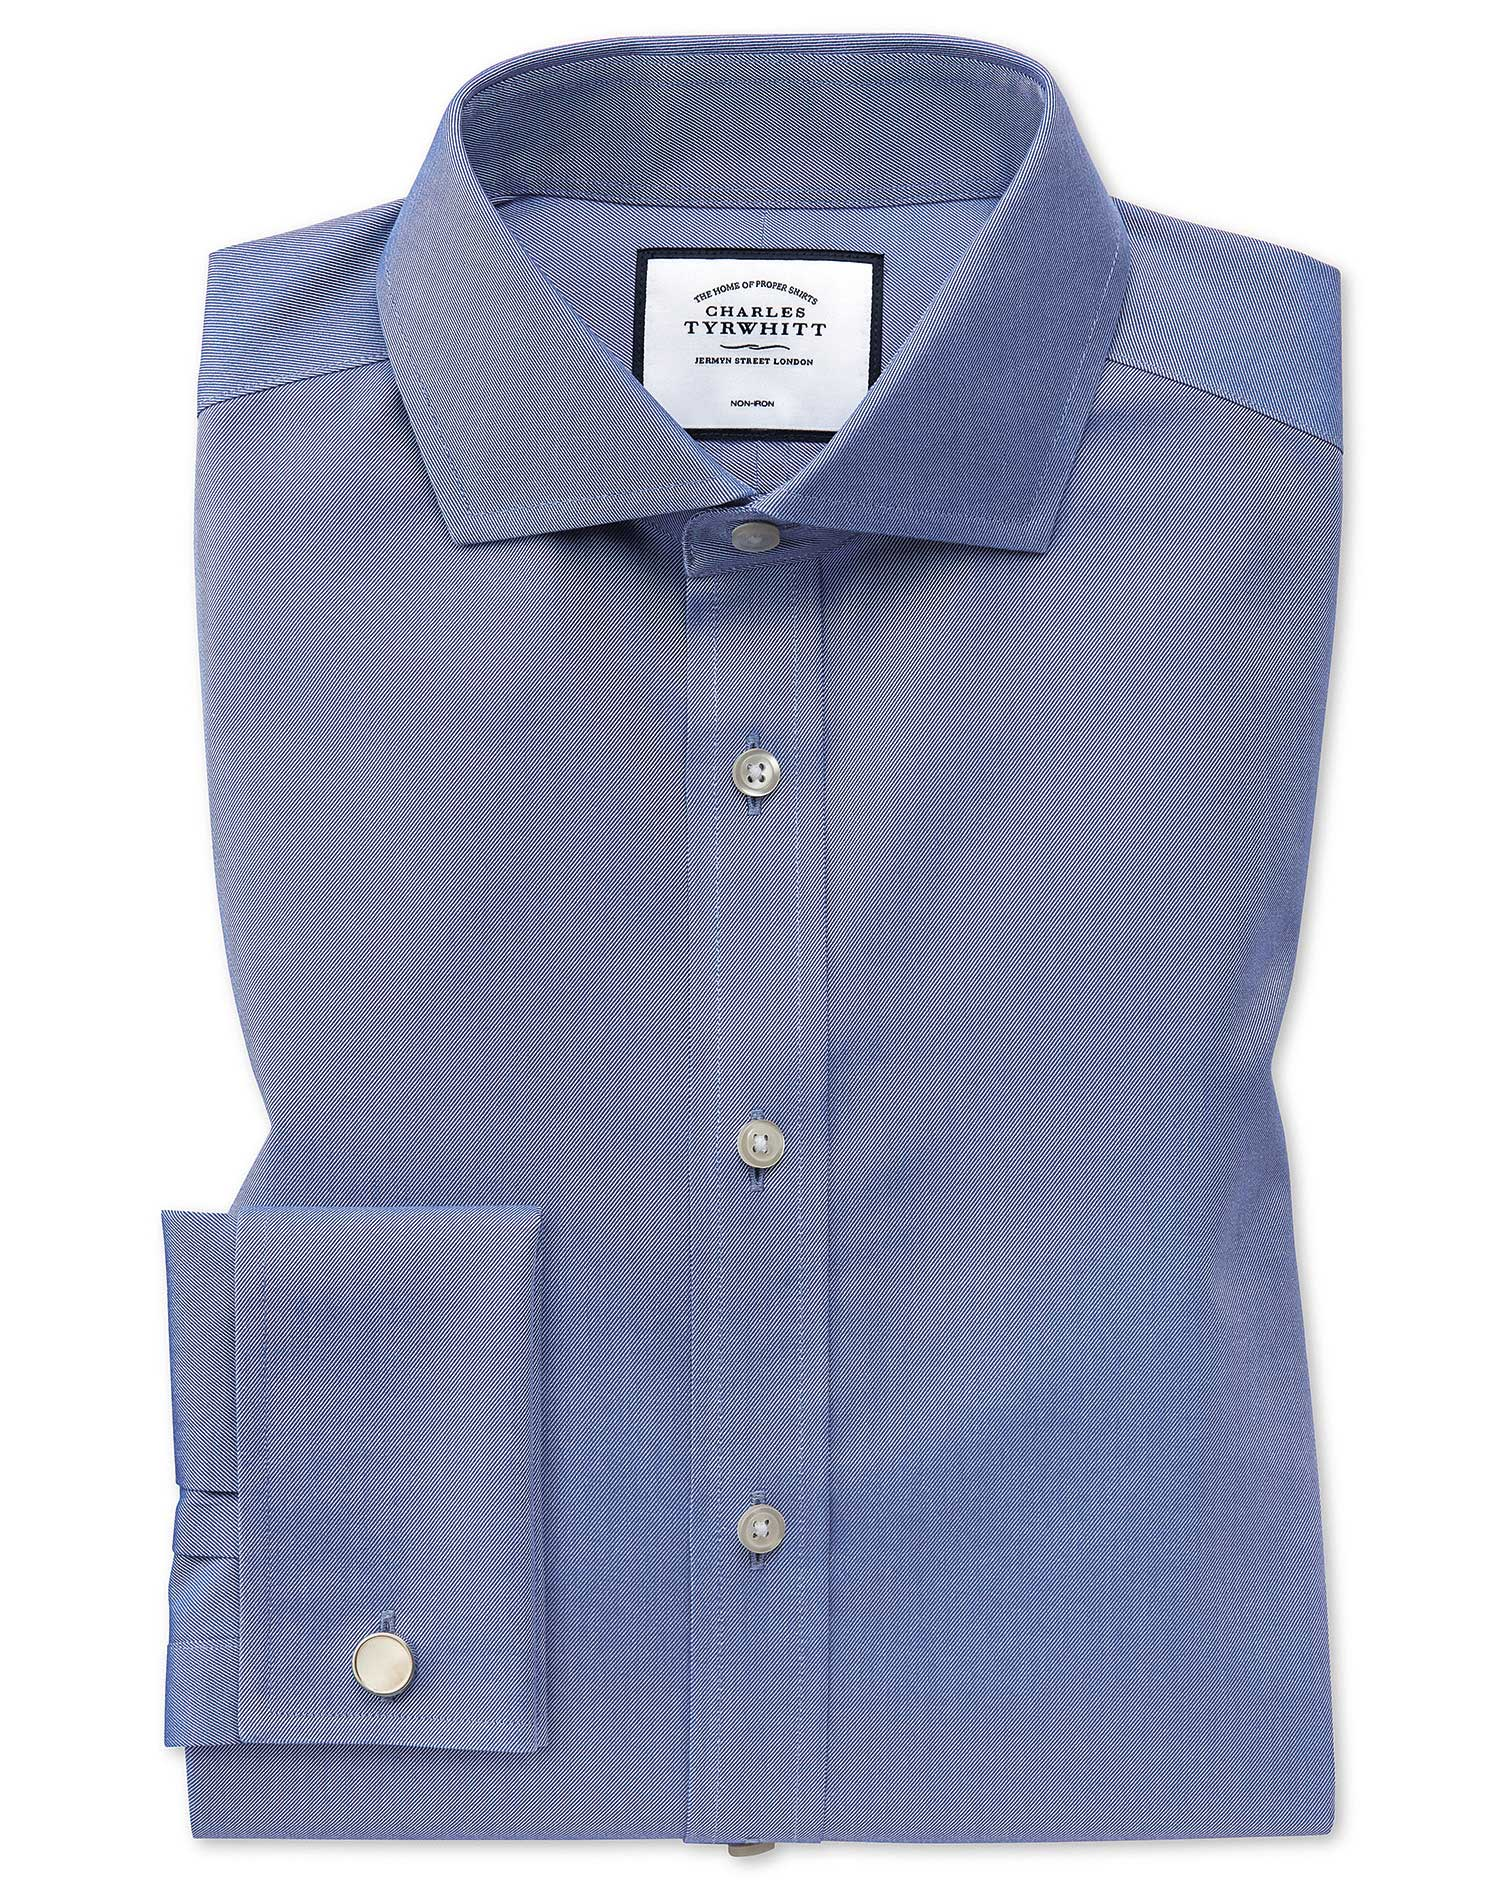 Extra Slim Fit Cutaway Non-Iron Twill Mid Blue Cotton Formal Shirt Single Cuff Size 17/37 by Charles